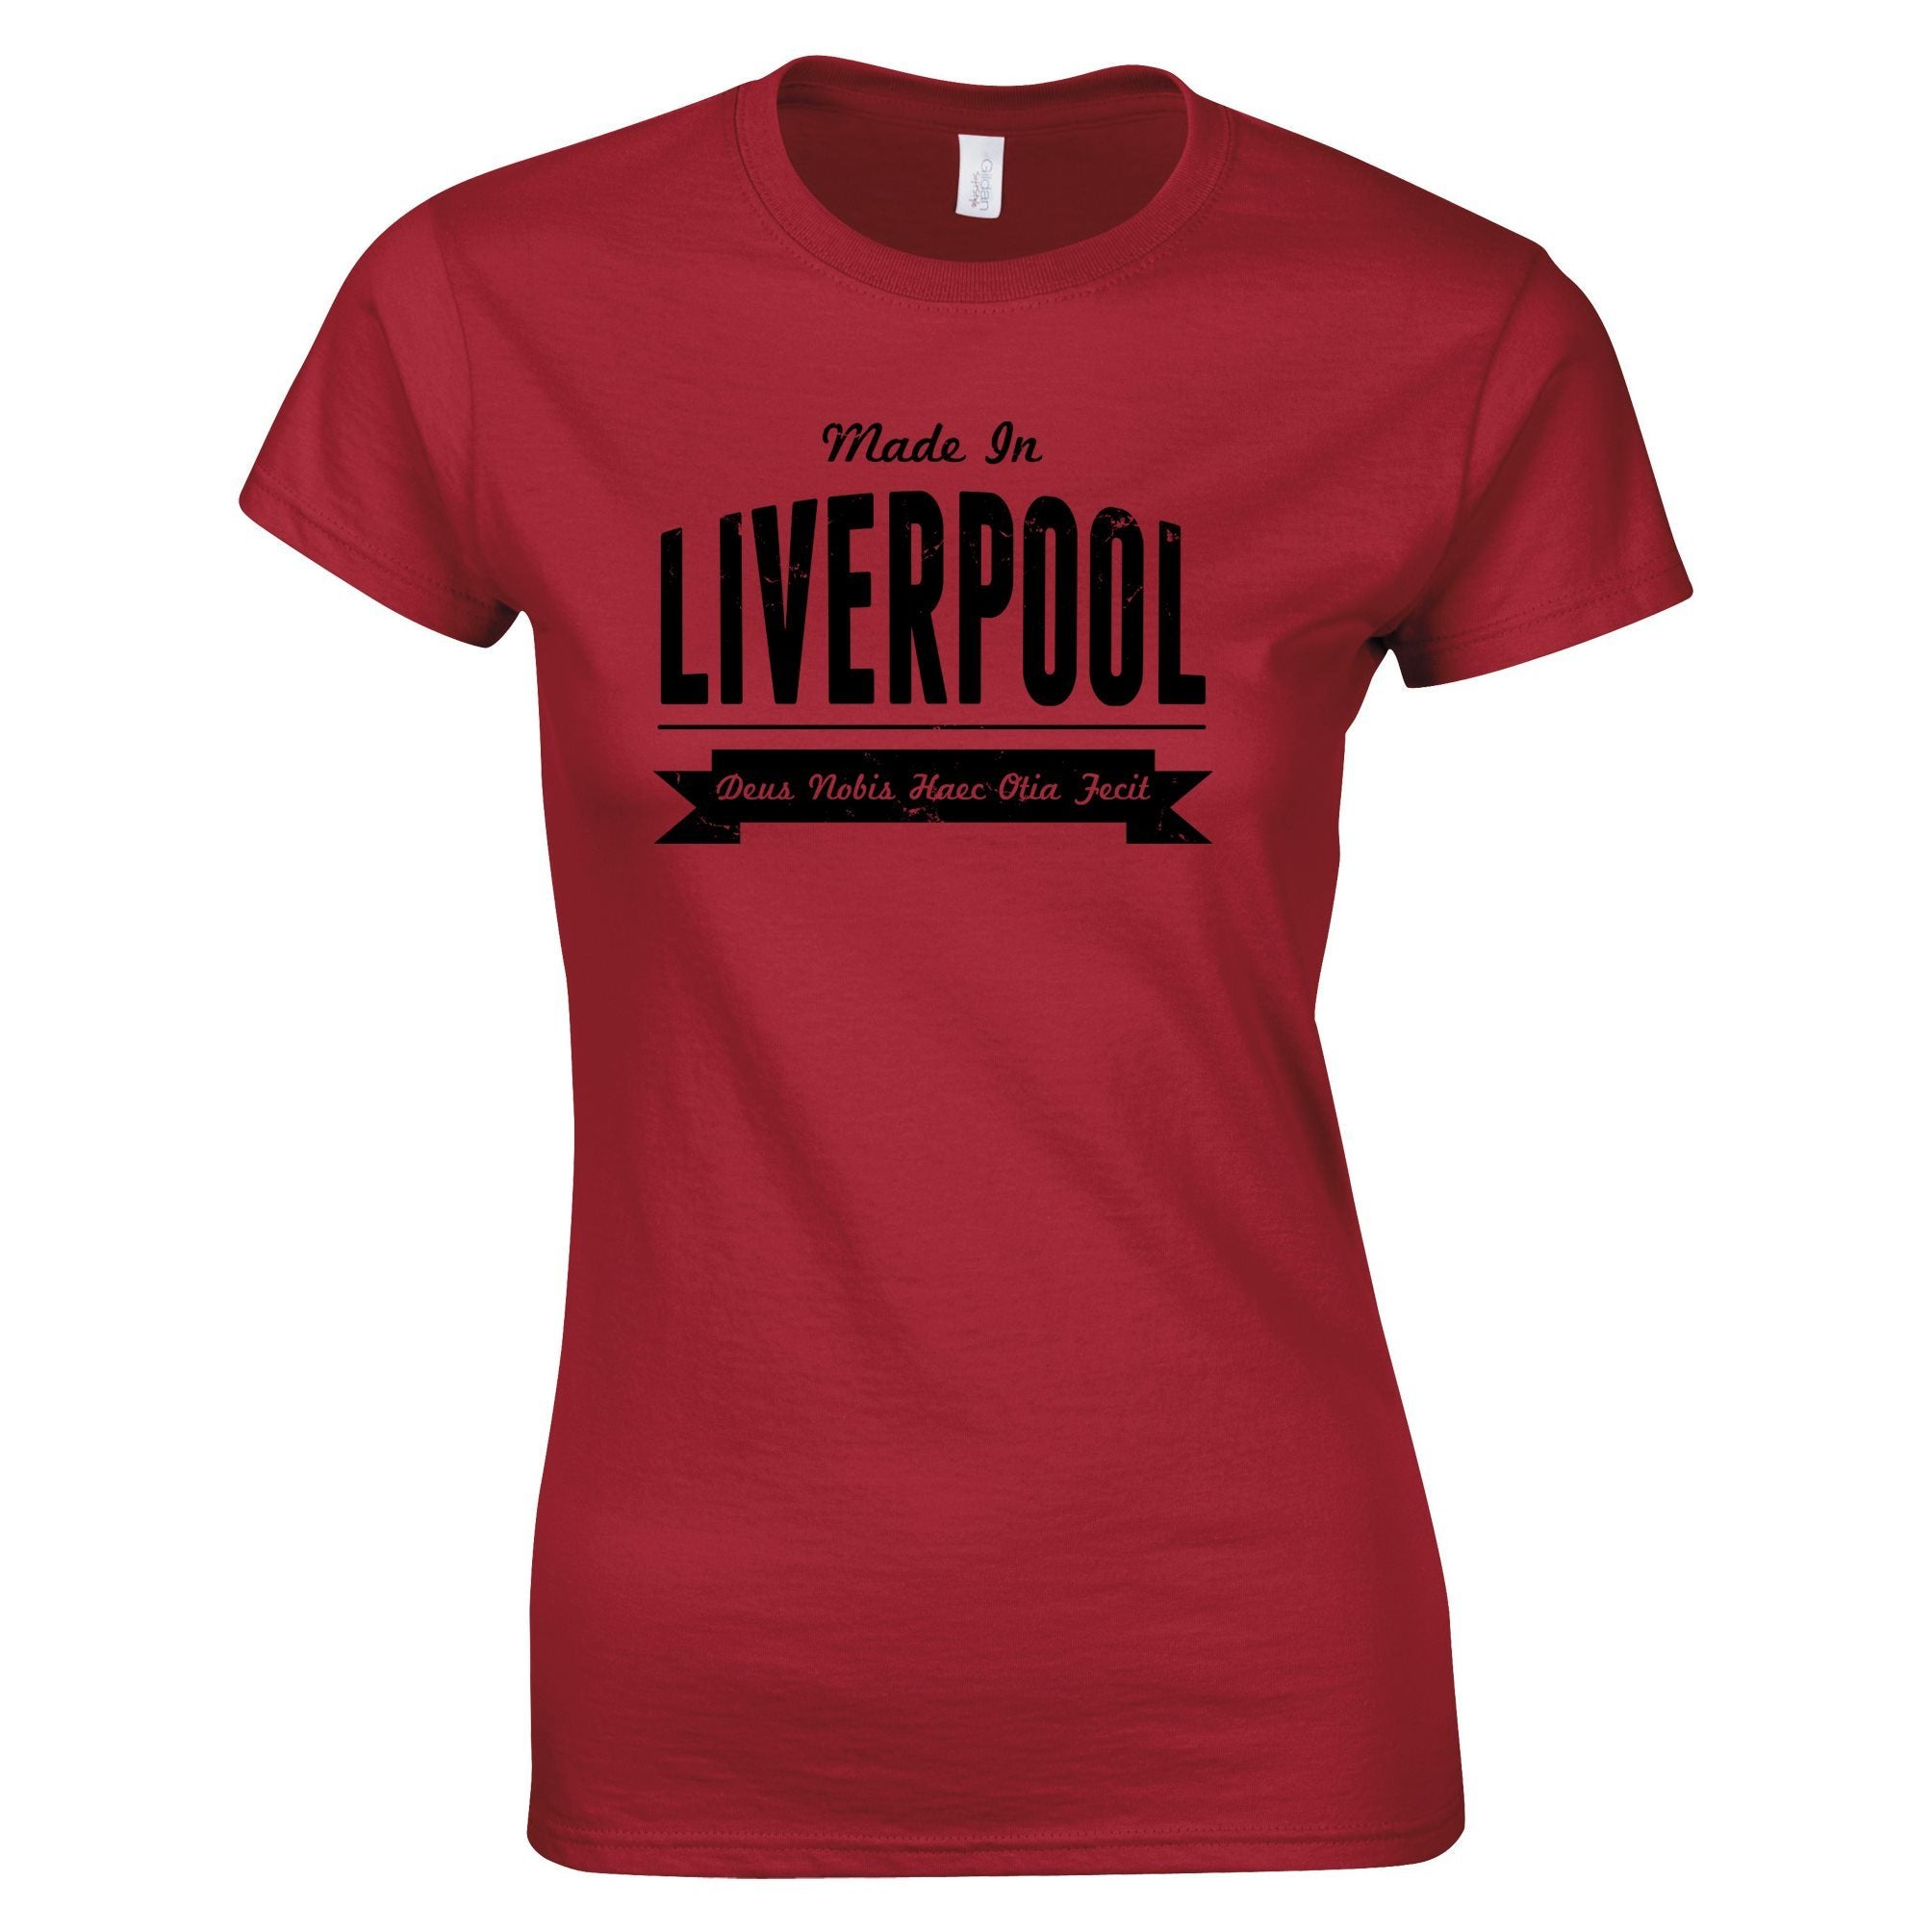 Hometown Pride Womens T Shirt Made in Liverpool Banner